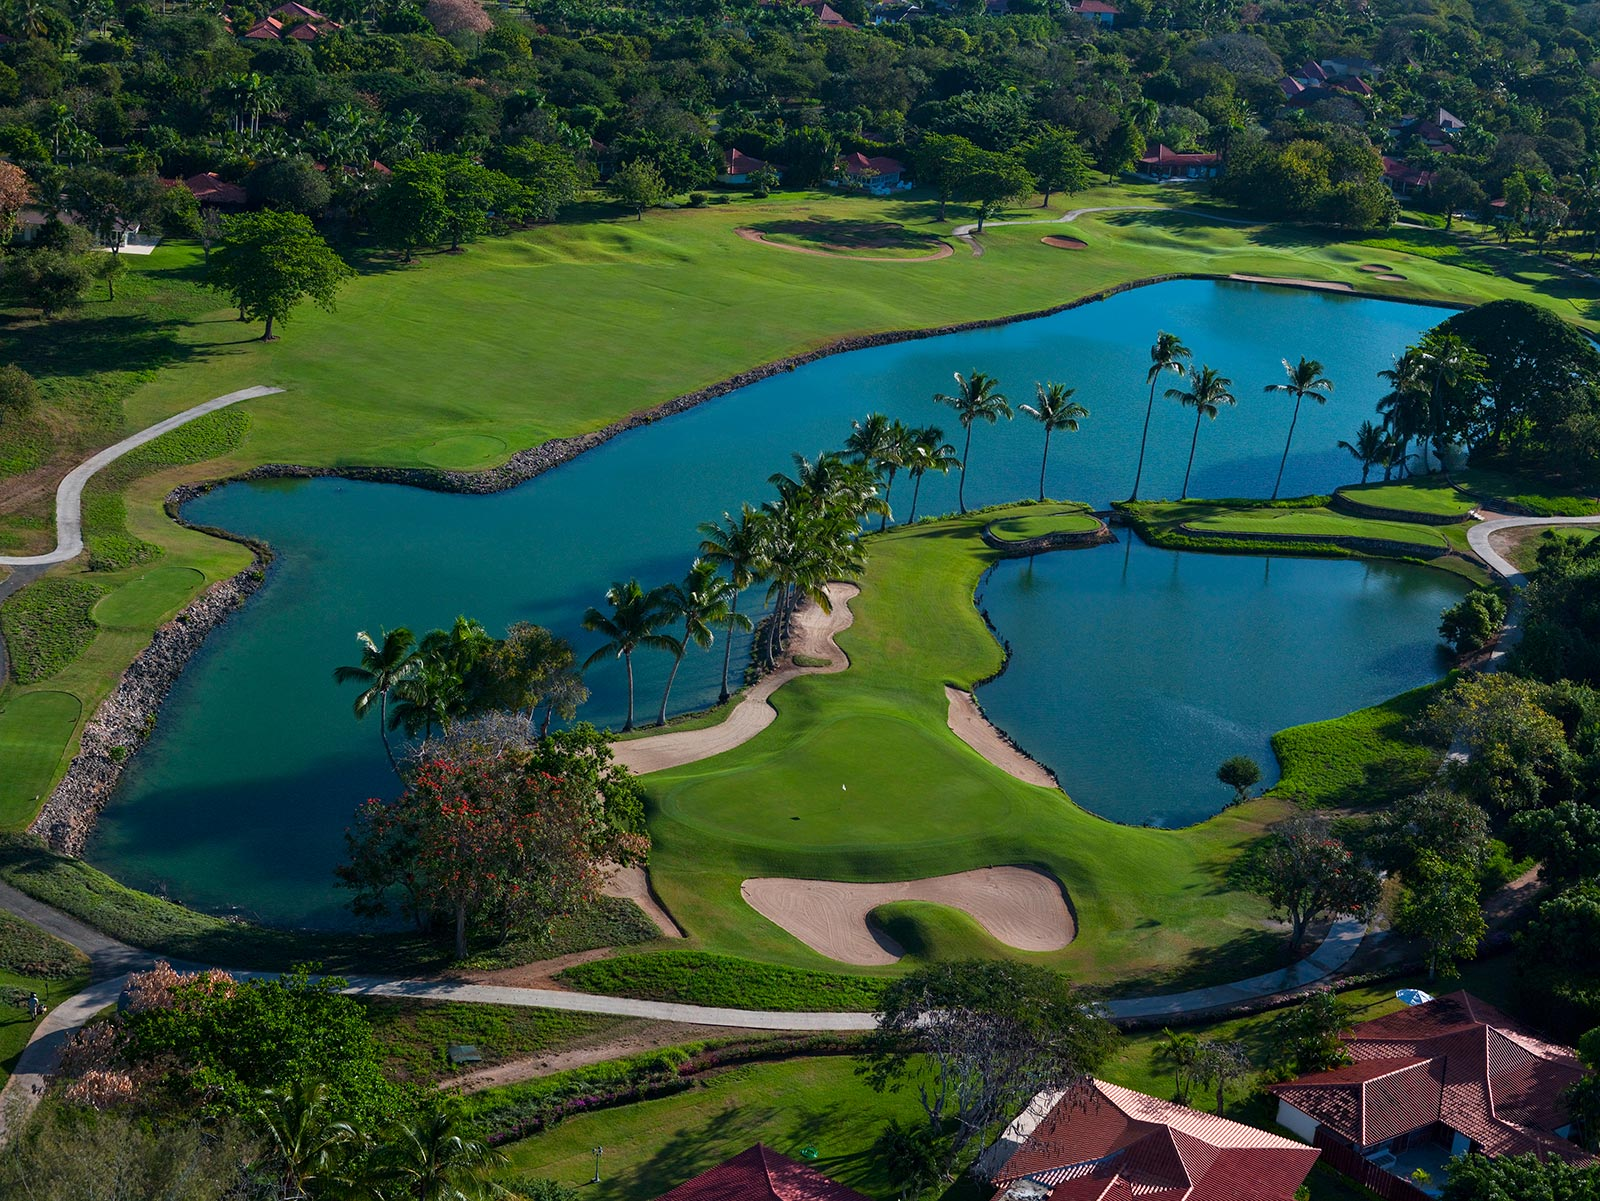 CASA DE CAMPO santo domingo Links